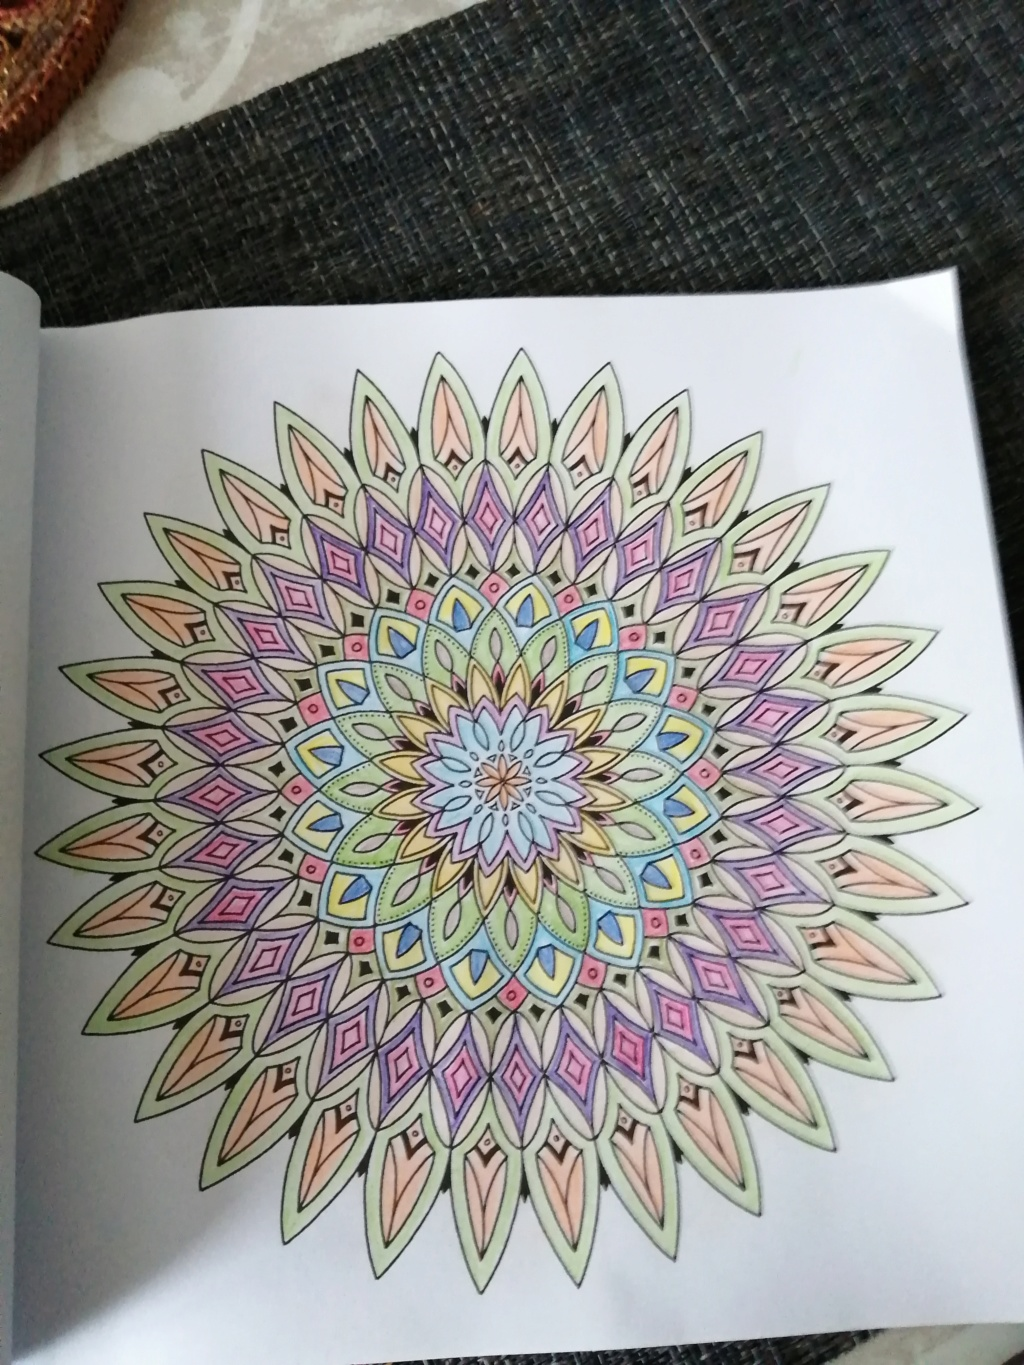 coloriage anti-stress pour adulte - Page 16 00812